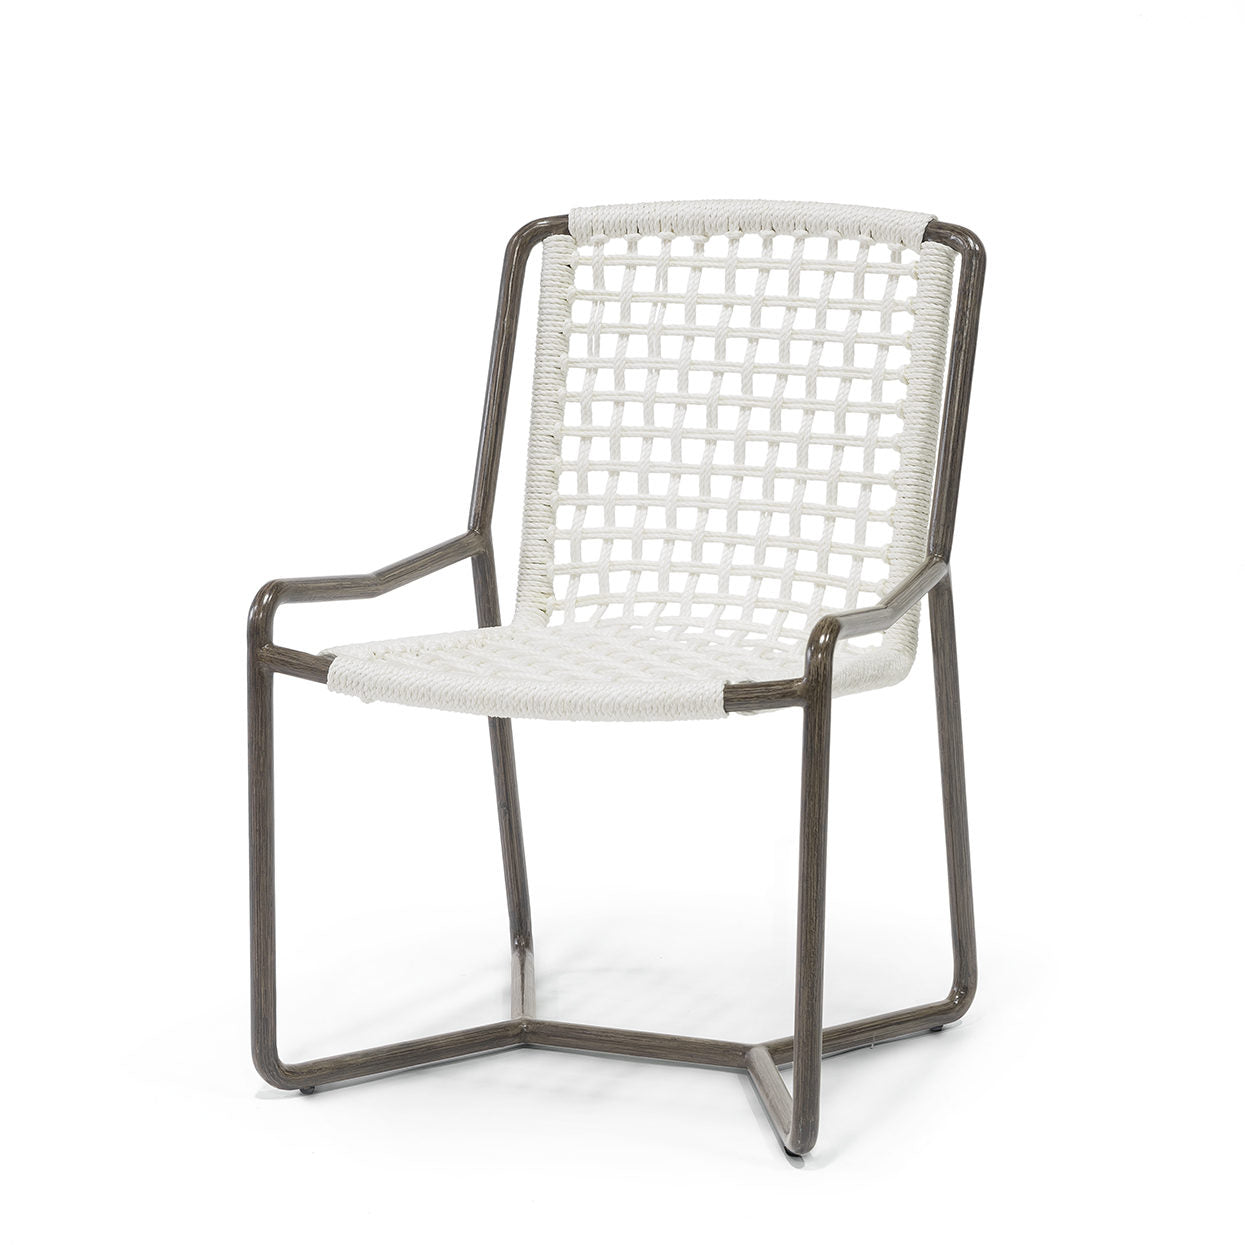 Outdoor Dining Chair - Dockside